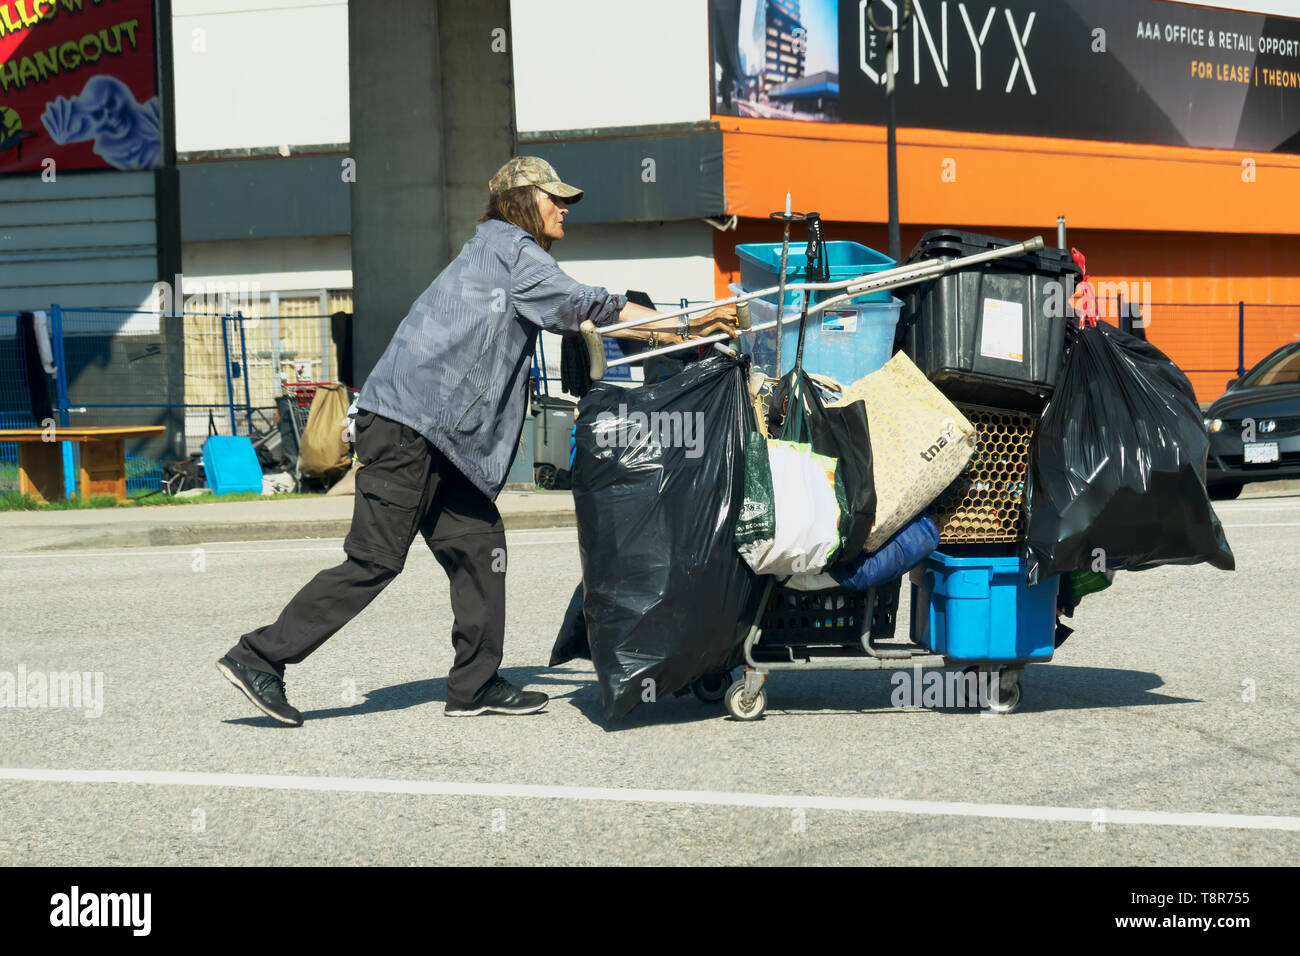 A homeless man walking across an intersection pushing a shopping cart loaded with his worldly possessions. - Stock Image